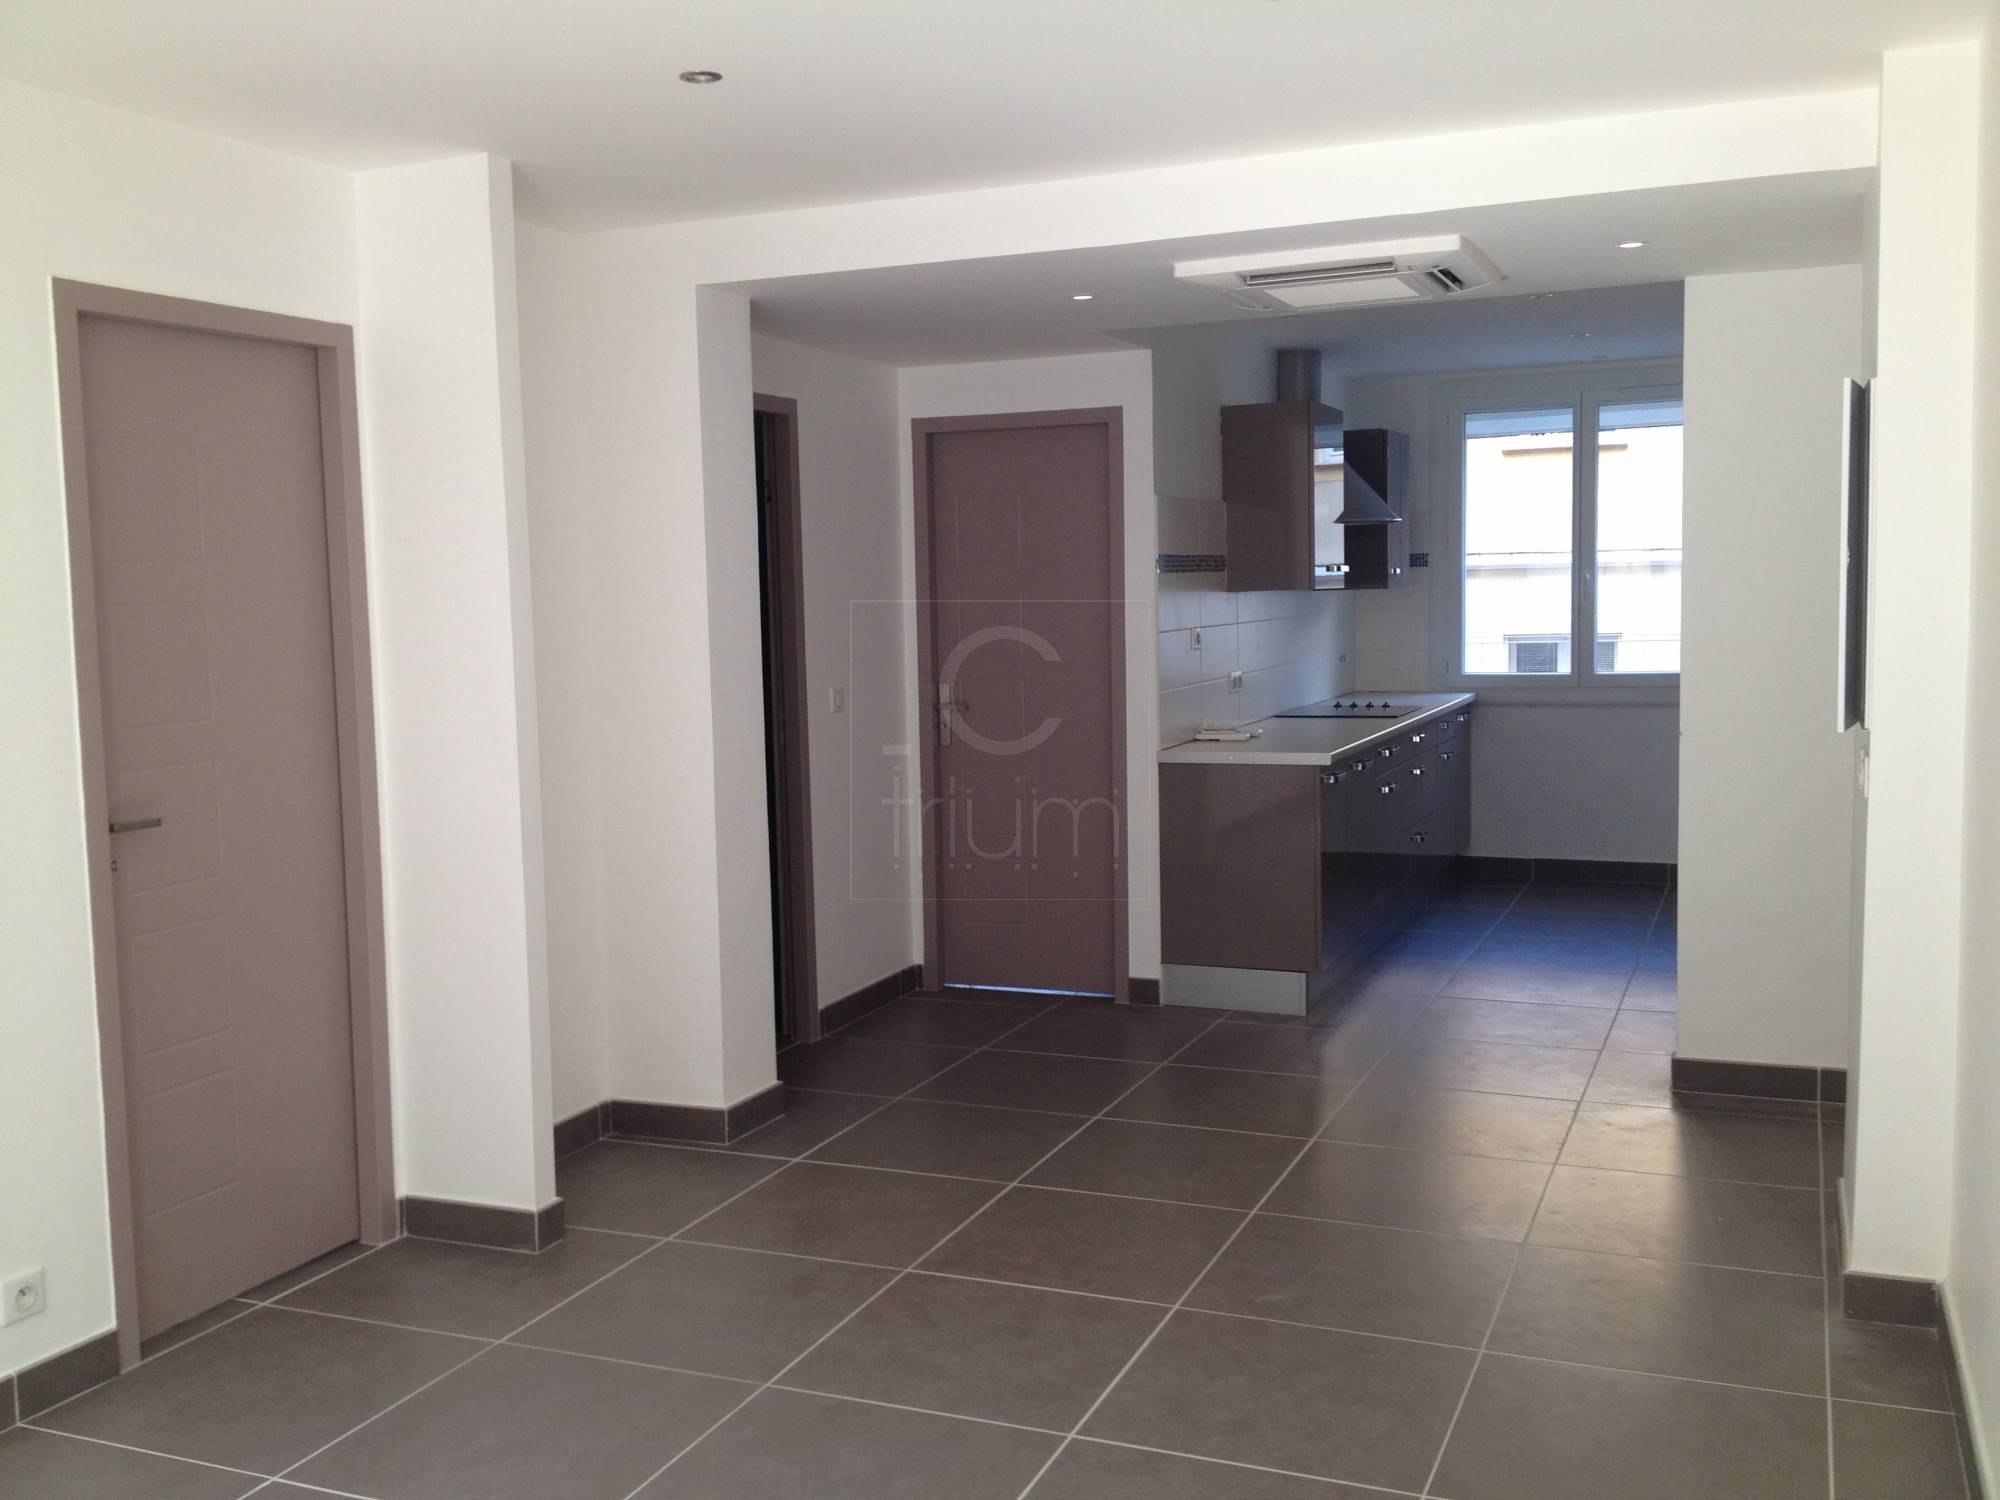 Location appartement t3 f3 marseille 7eme endoume refait for Location garage marseille 7eme